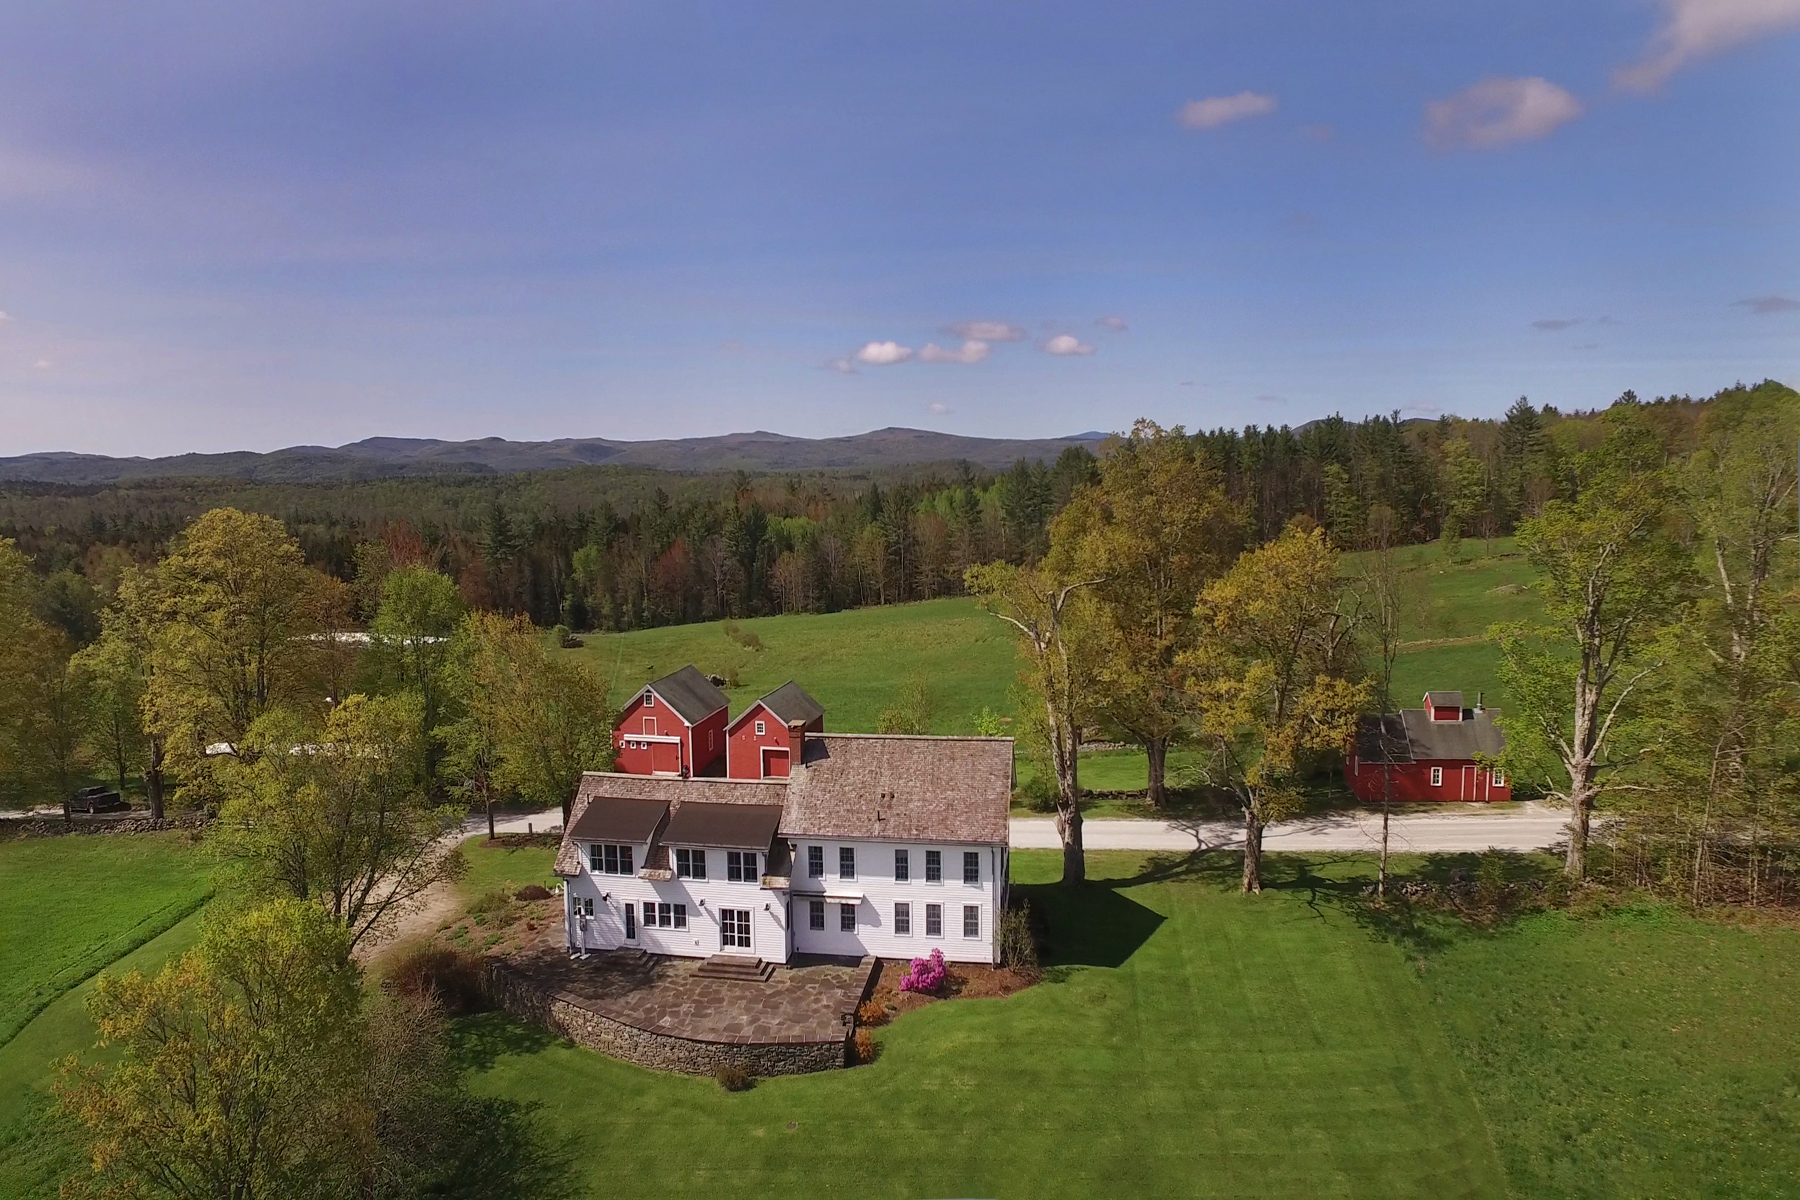 Single Family Homes for Sale at Elegant Vermont Farmhouse, 361 Acres, Barn 1783 Russellville Road Shrewsbury, Vermont 05738 United States